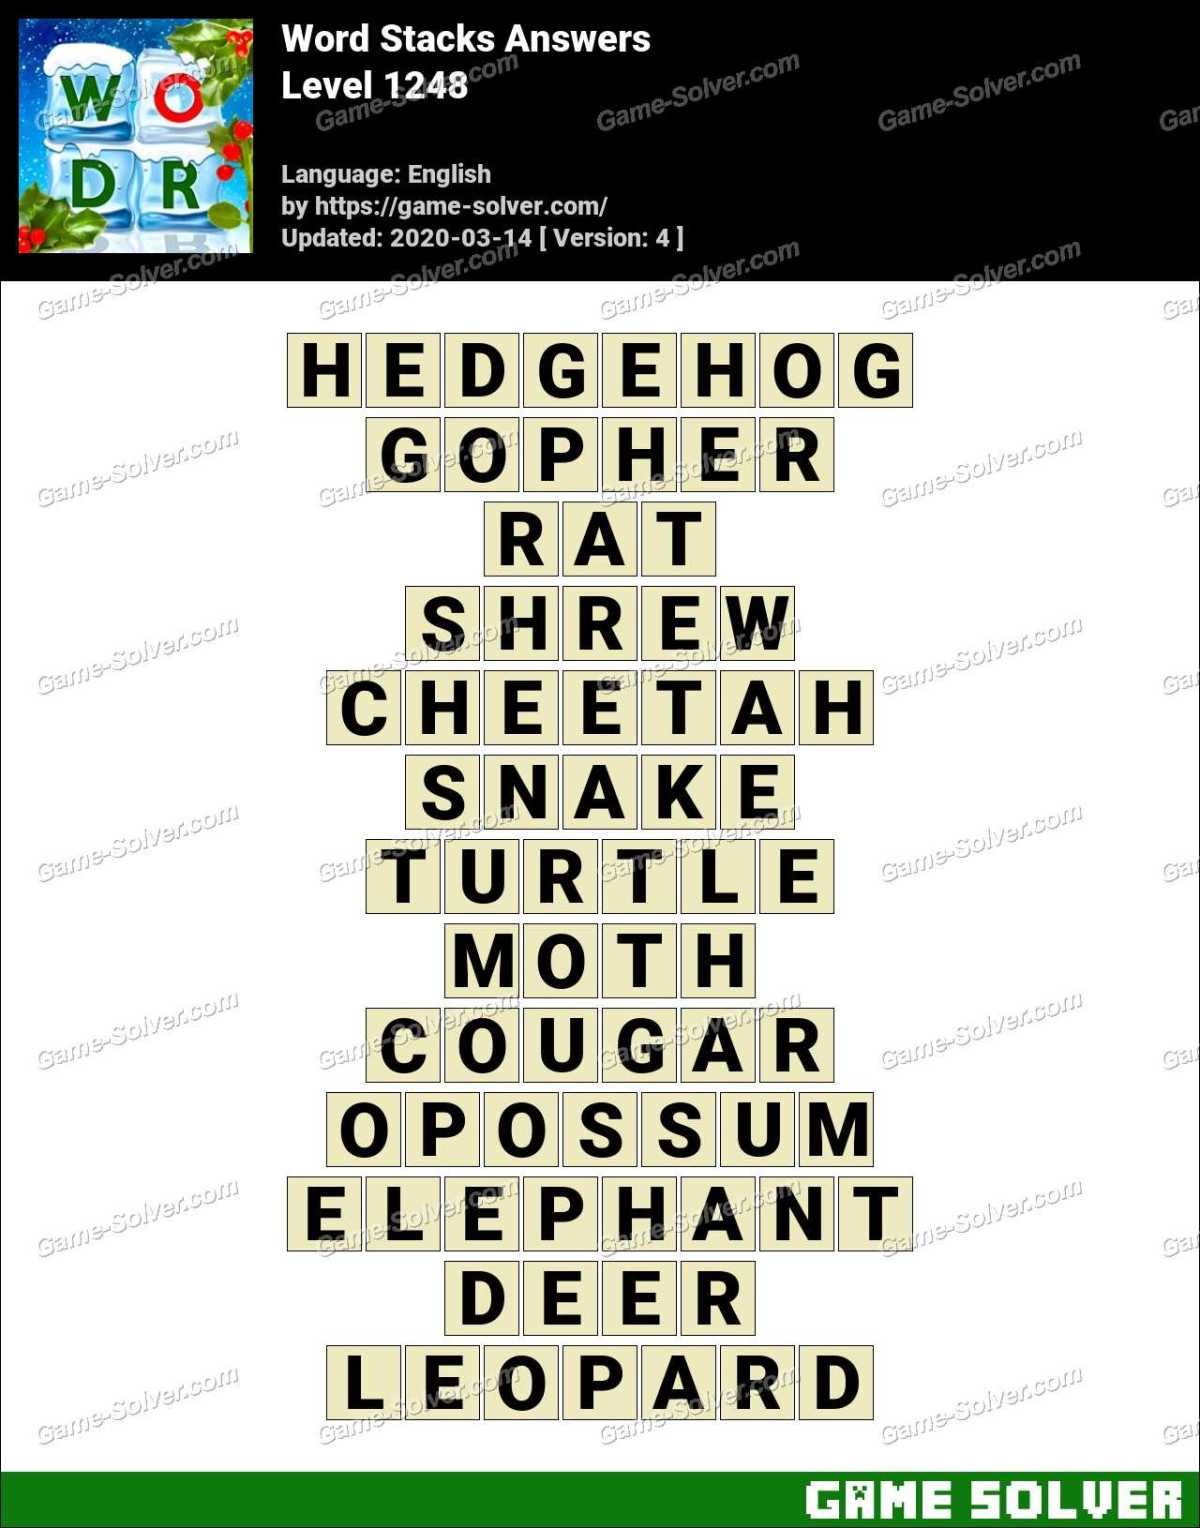 Word Stacks Level 1248 Answers